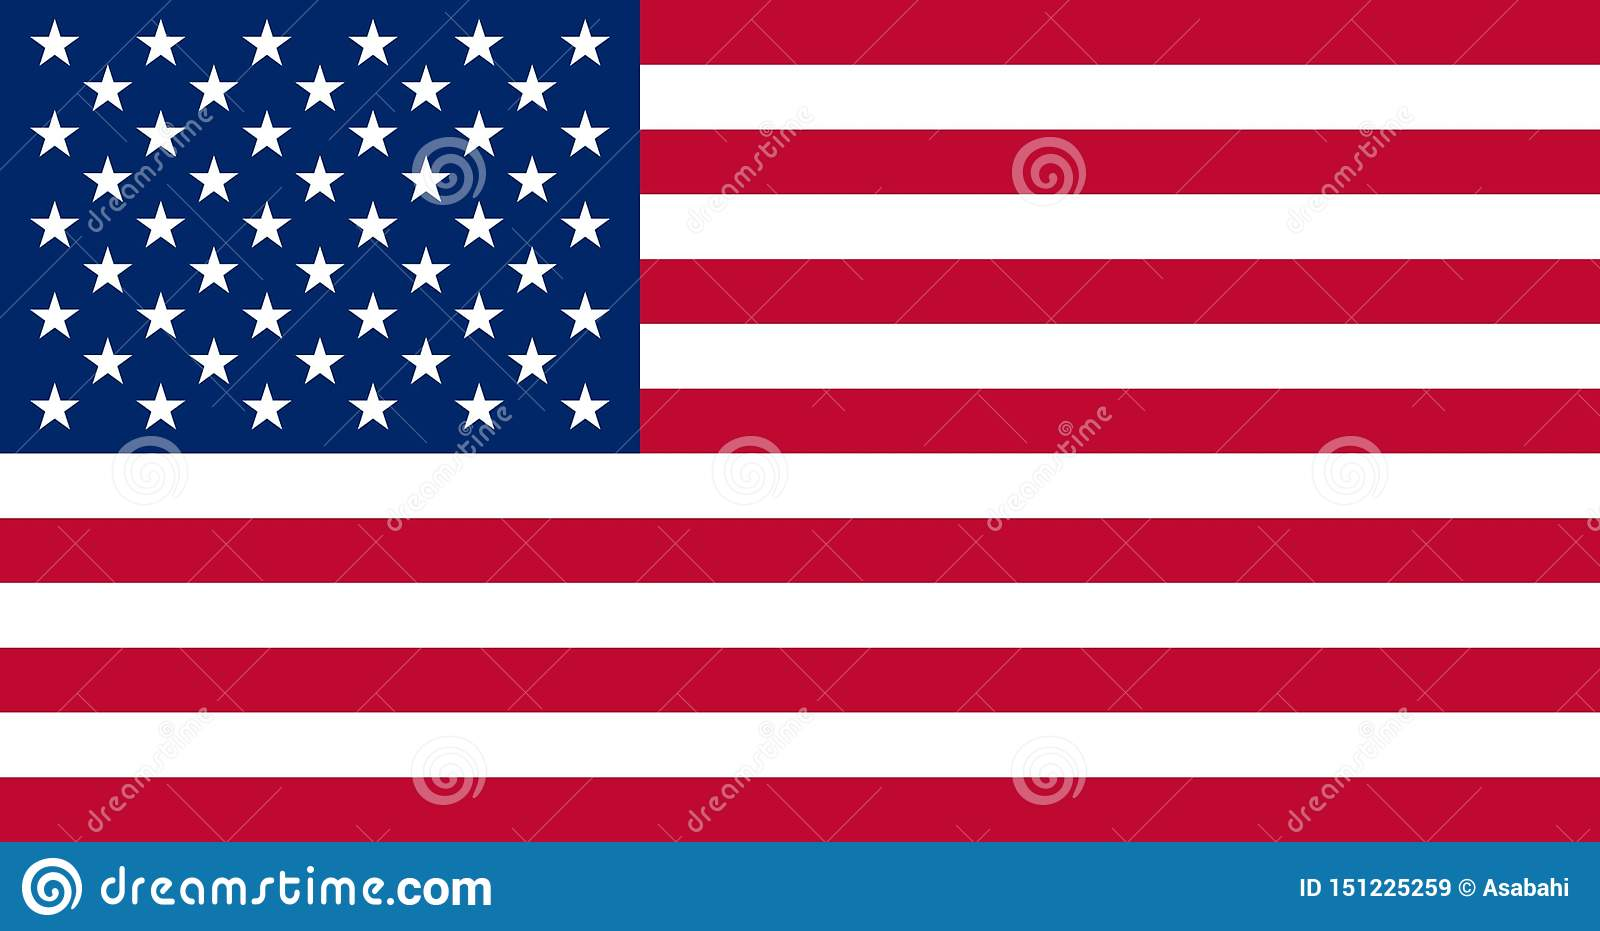 USA Flag, United States Of America Stock Illustration ... on globe of usa, flag of usa, atlas of usa, satellite of usa, outline of usa, southeast usa, travel usa, geography usa, history usa, city map usa, mapquest of usa, united states maps usa, mountains usa, states of usa, union of usa, physical map usa, world map usa, new jersey usa, road map usa, drawing of usa,